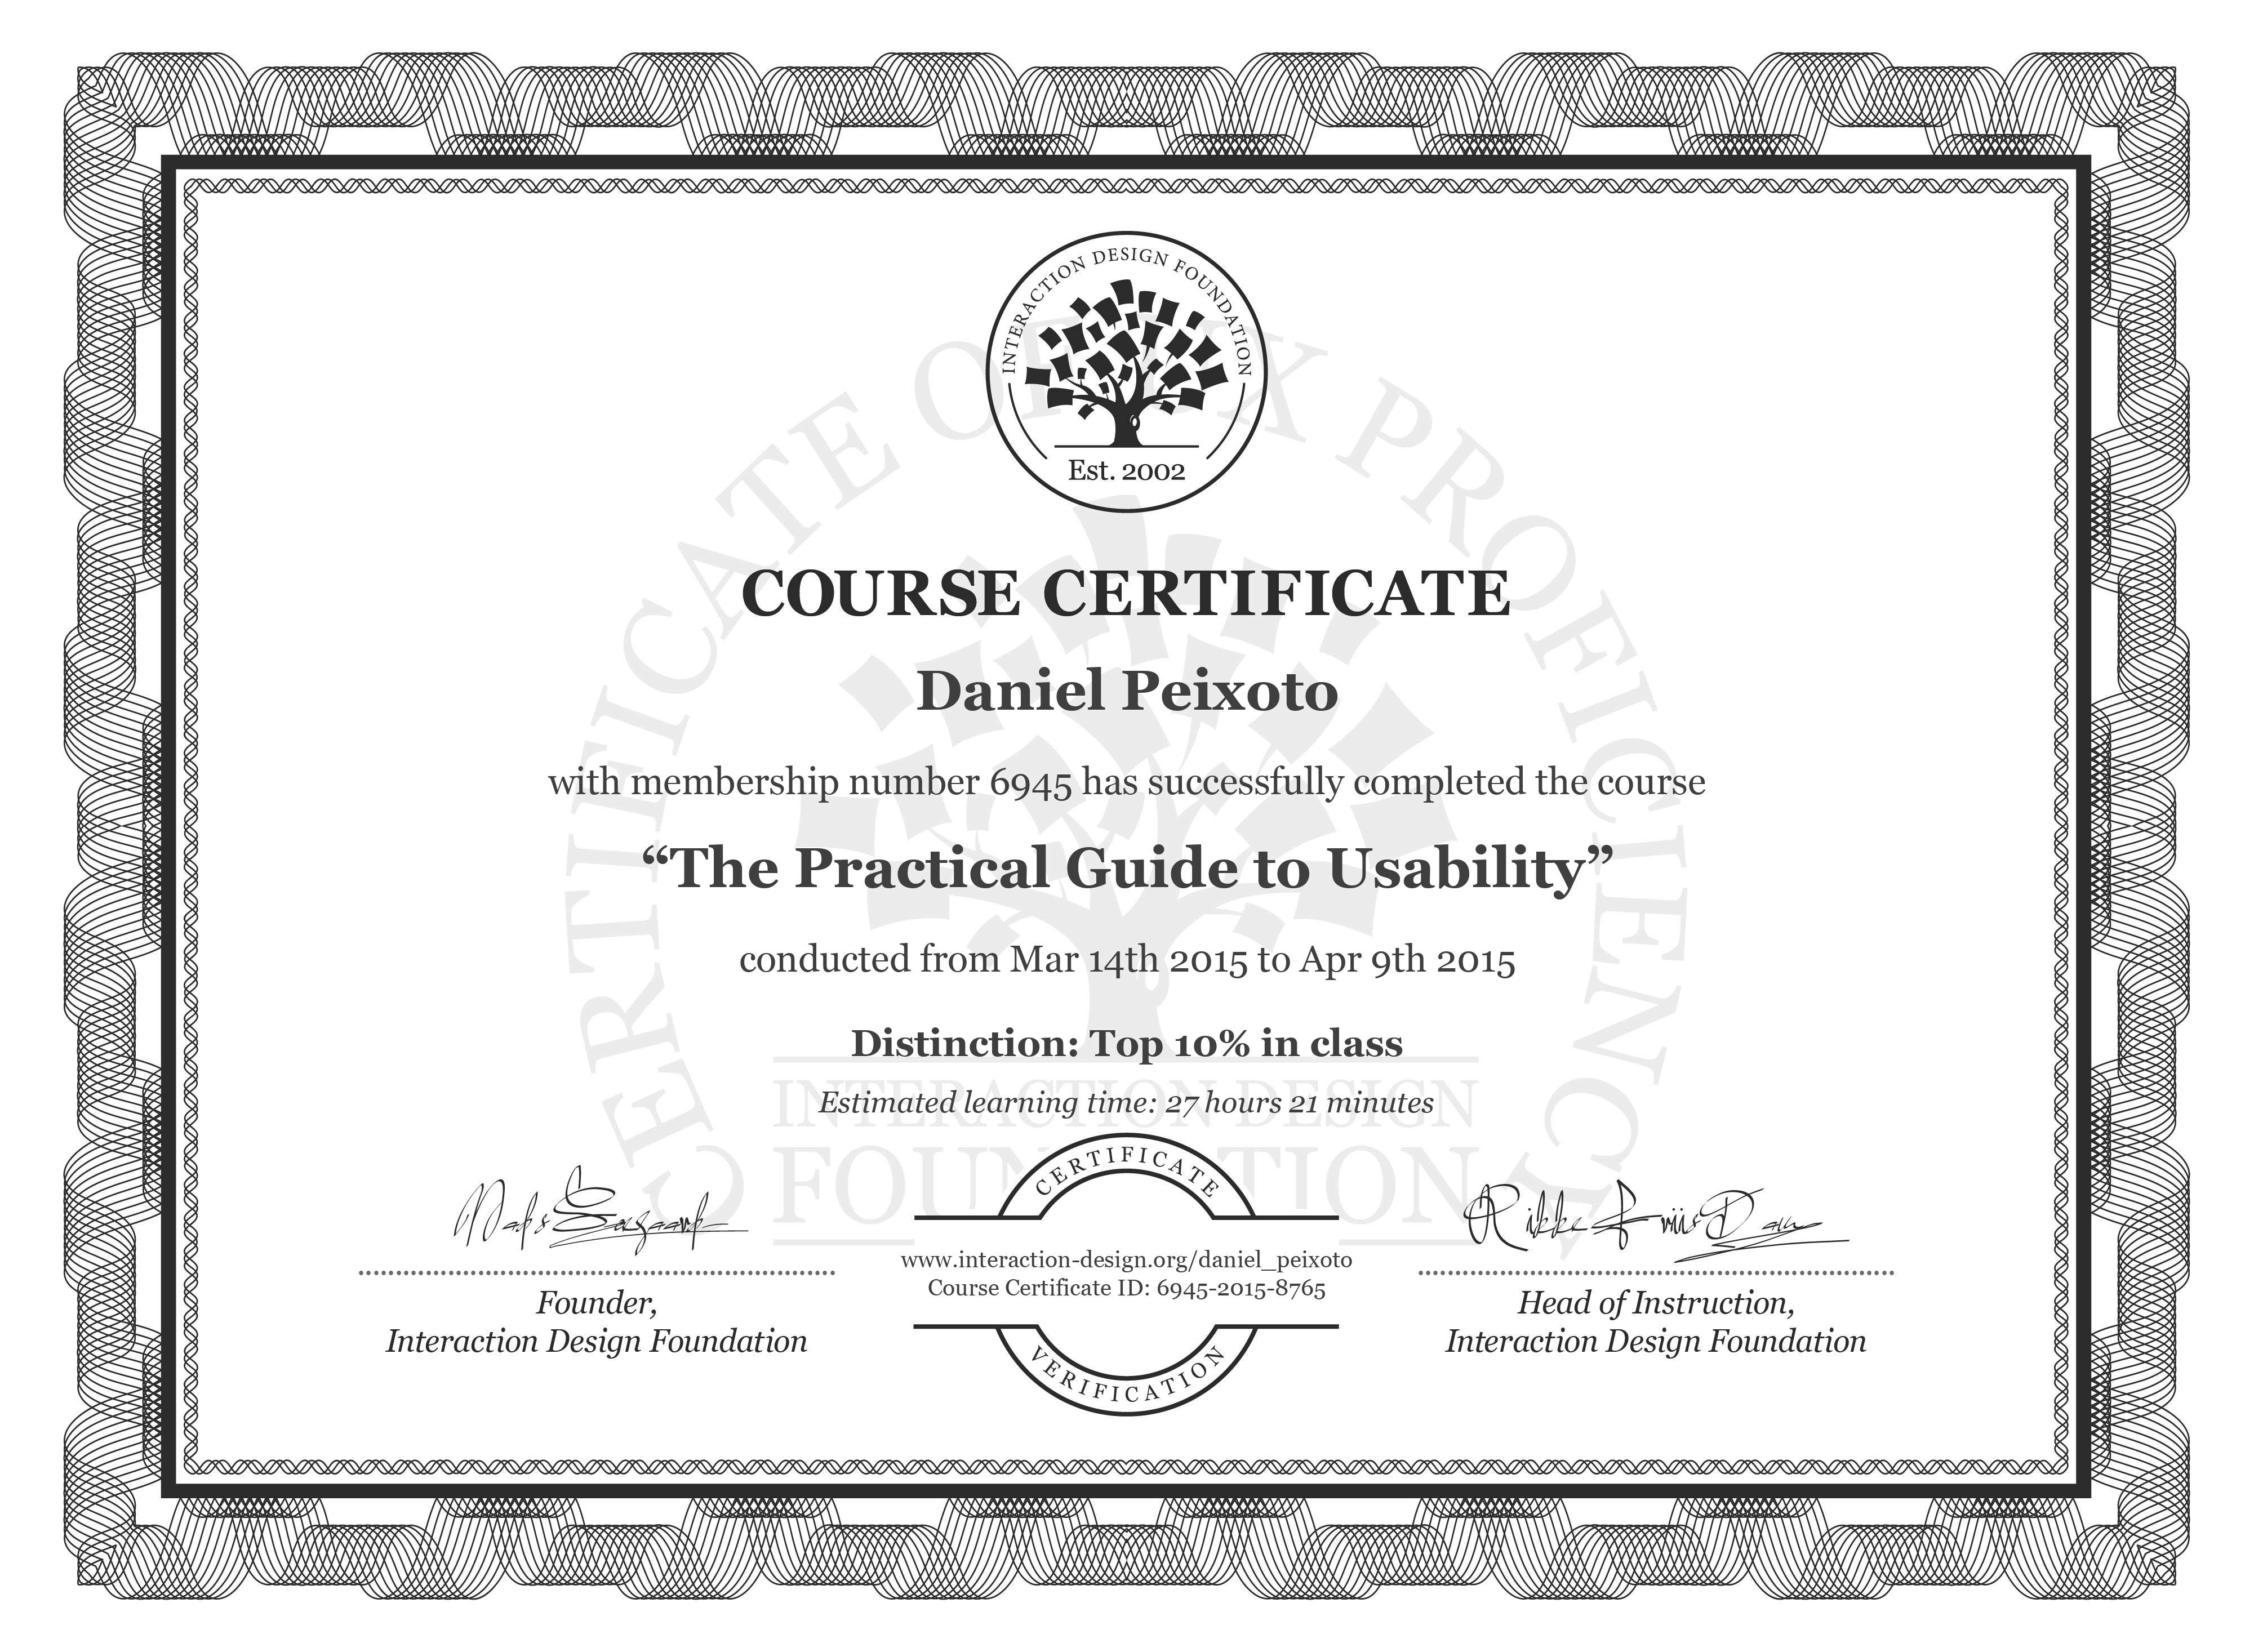 Daniel Peixoto's Course Certificate: The Practical Guide to Usability